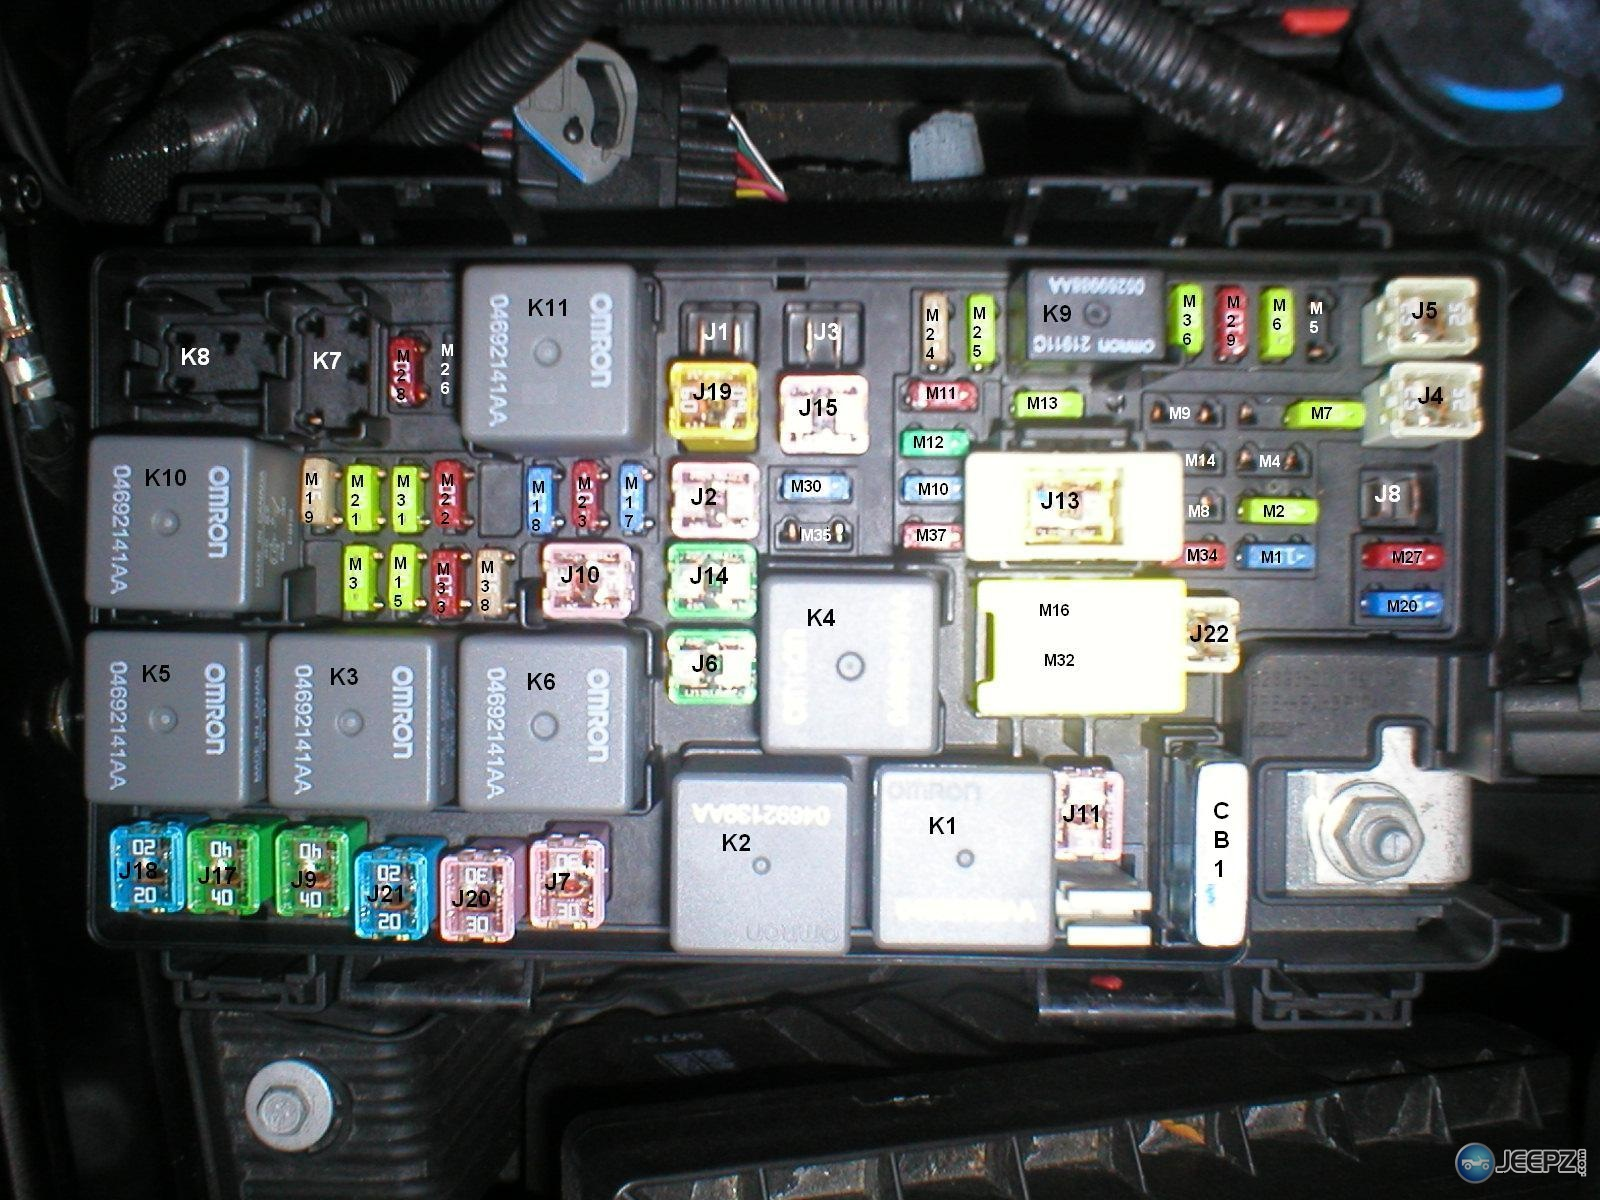 jeep jk 2009 fuse map layout diagram 2012 Peterbilt 379 Fuse Panel Peterbilt 379 Fuse Panel Diagram